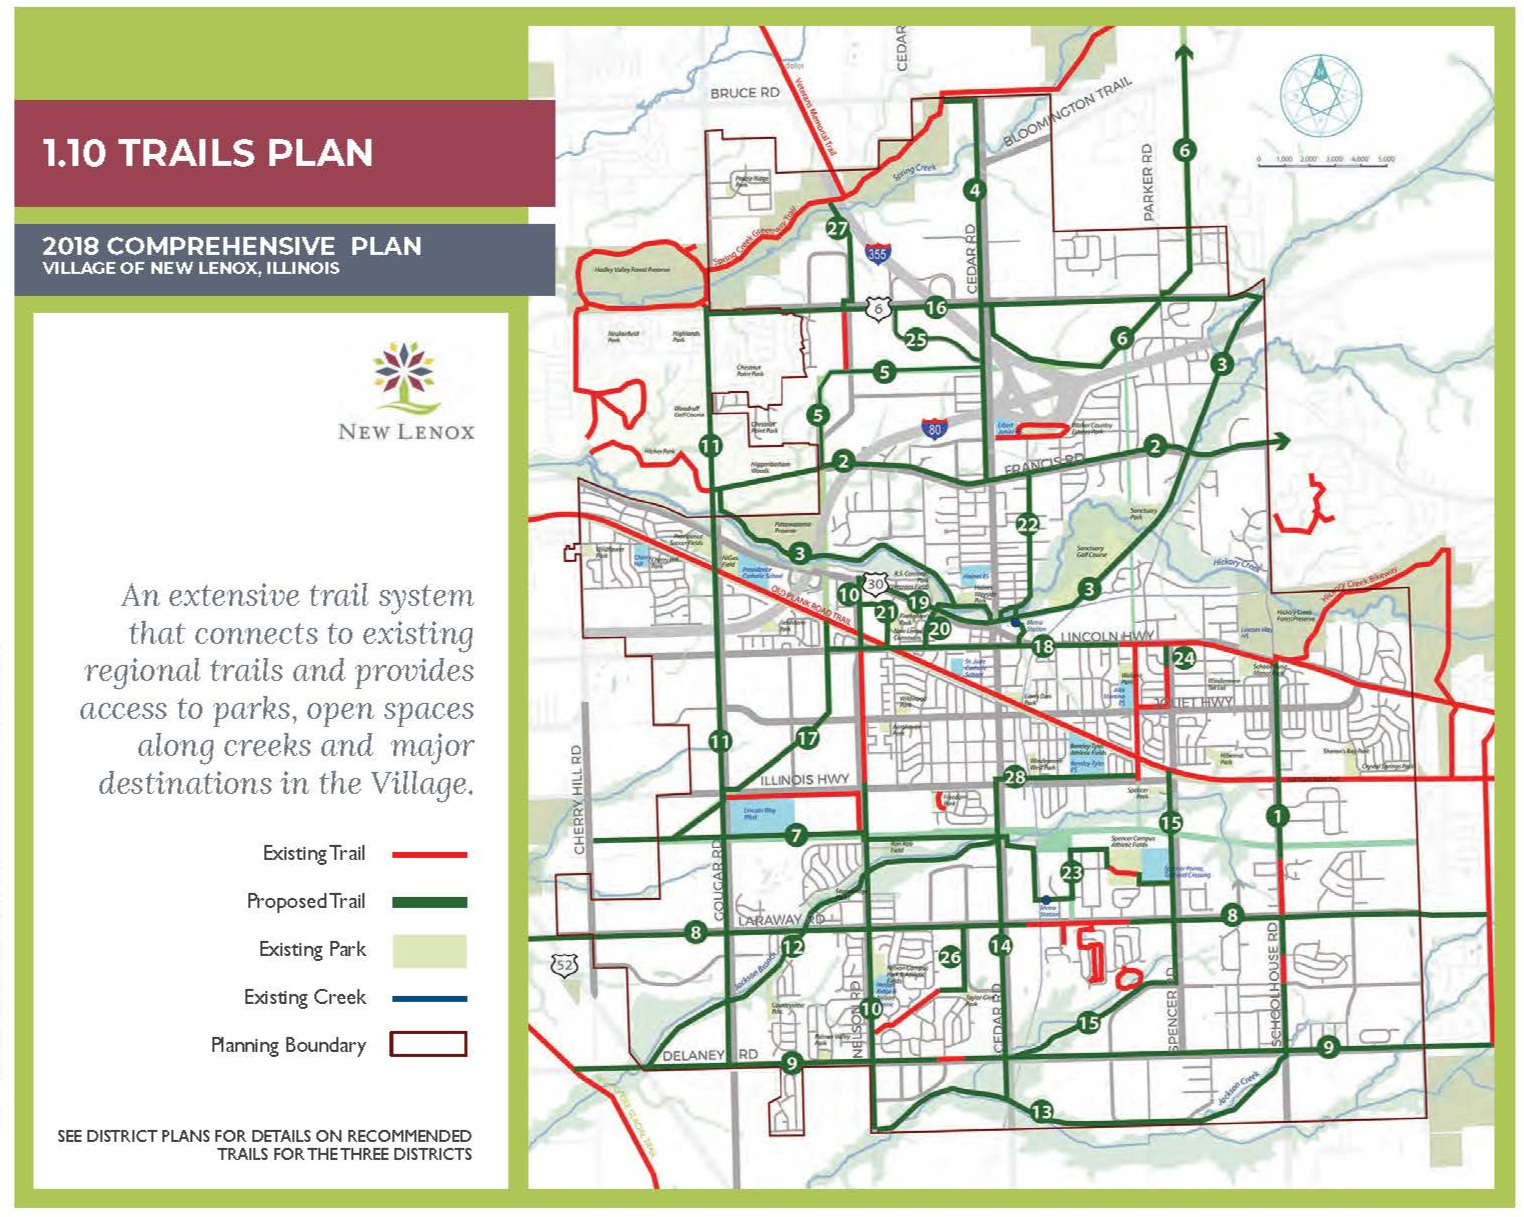 FINAL ADOPTED COMPREHENSIVE PLAN NEW LENOX 11-26-18 HR 44.jpg